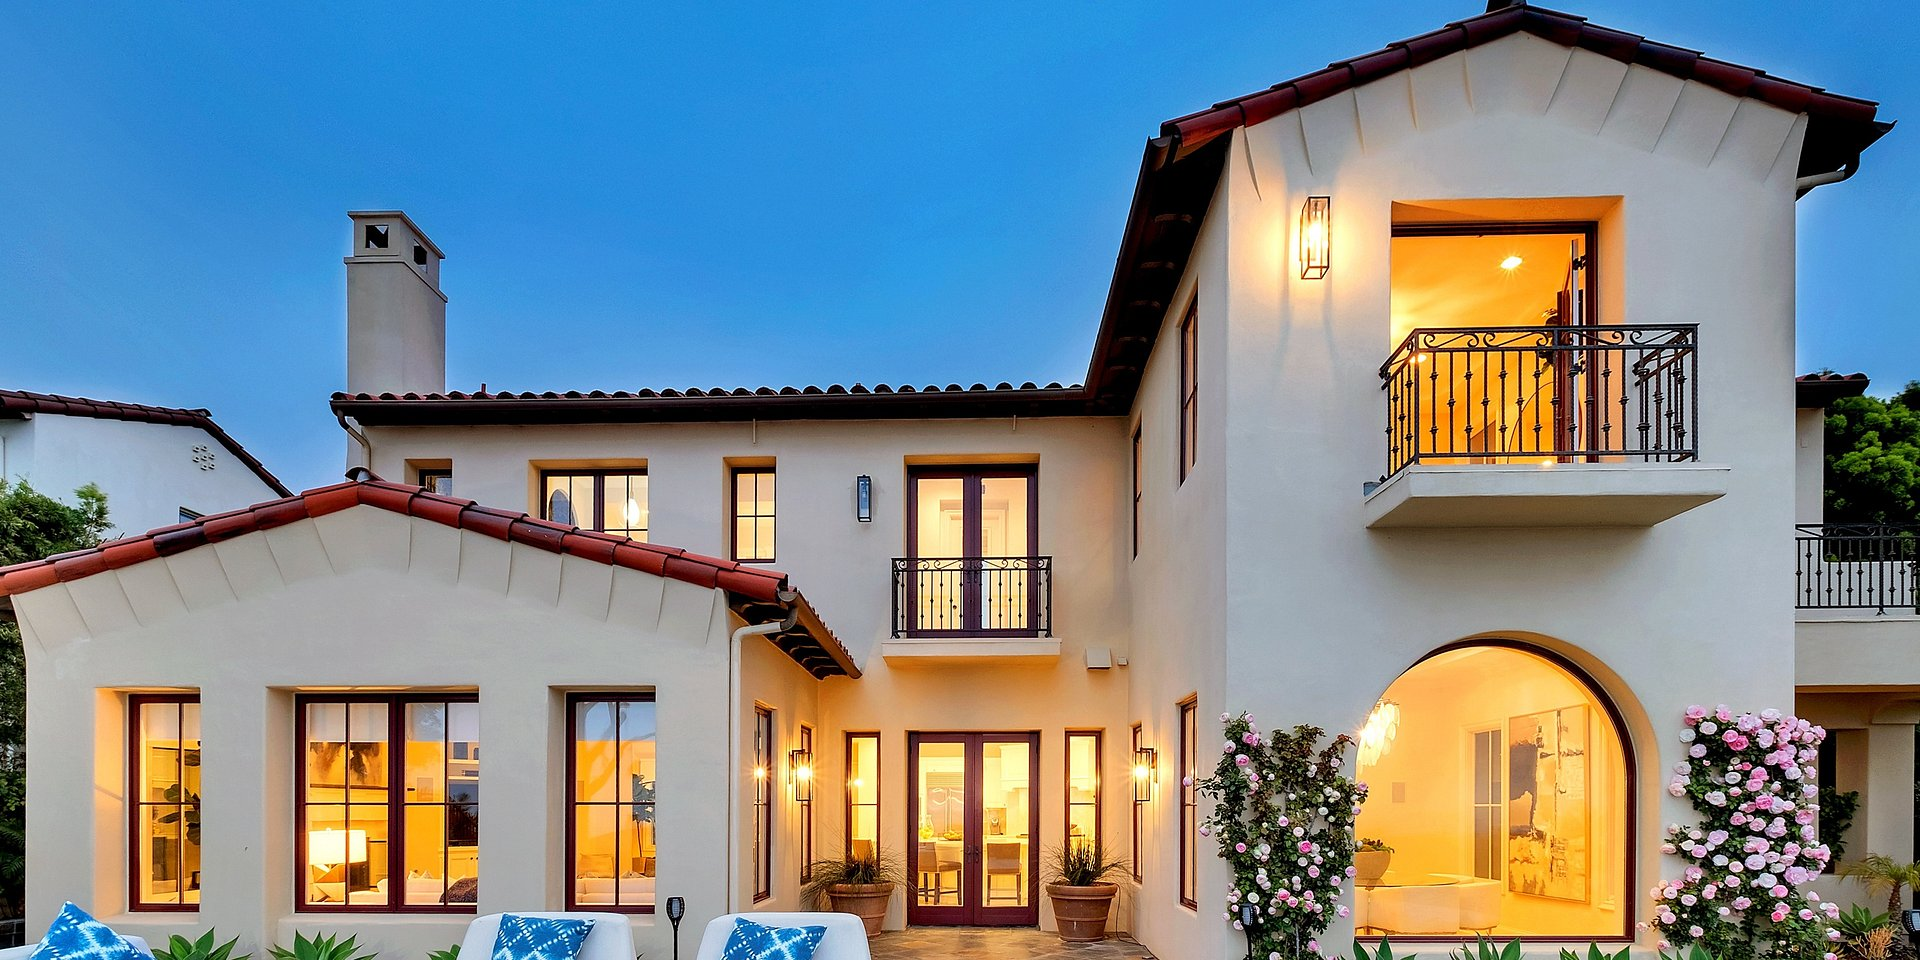 Coldwell Banker Residential Brokerage Lists Newport Beach Property for $6.788 Million